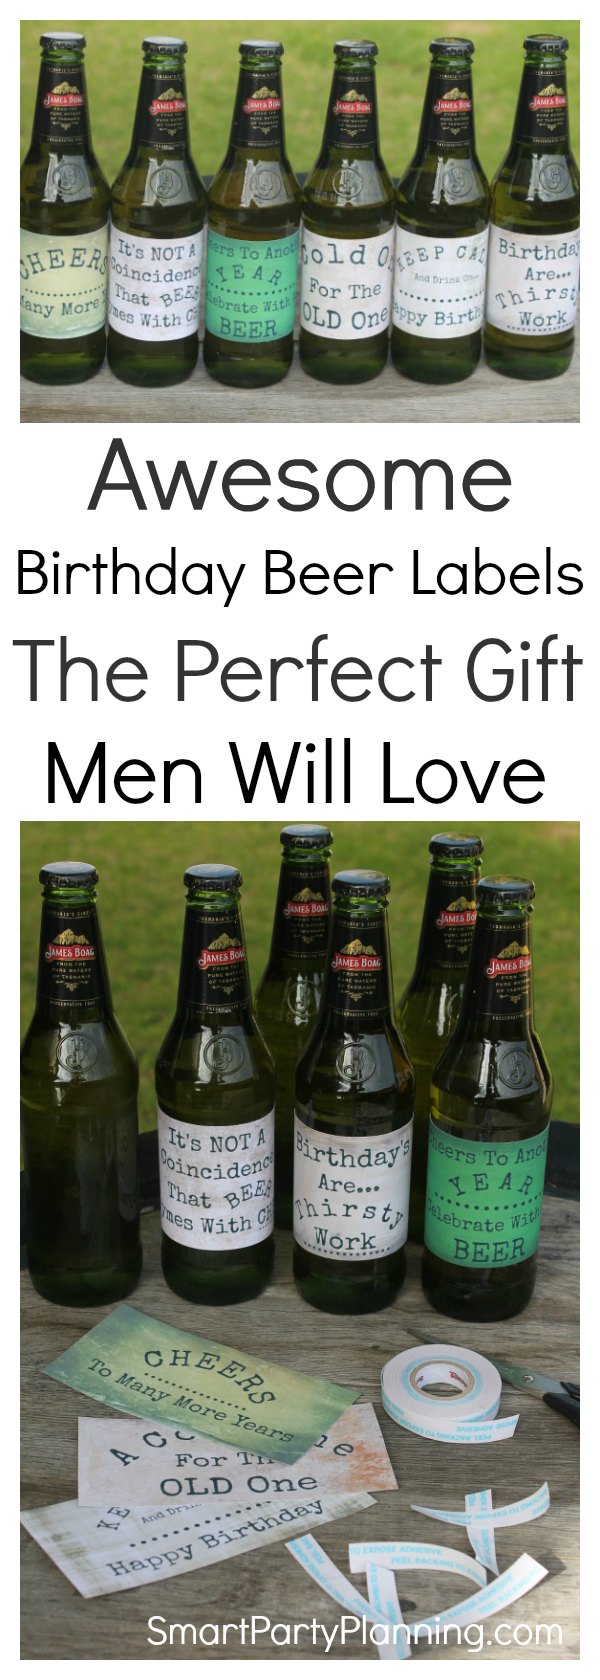 Grab an awesome printable beer label design perfect for birthday's. The guys will absolutely love it.  Whether it's for dad's birthday, your husband, partner or brother, these beer labels are going to be a present that he will want to receive. Fun DIY gifts always make the best gifts, and this one is super easy to make. They would even be great for use at parties too. #Printablebeerlabeldesign #Beergift #Printable #Printablelabel